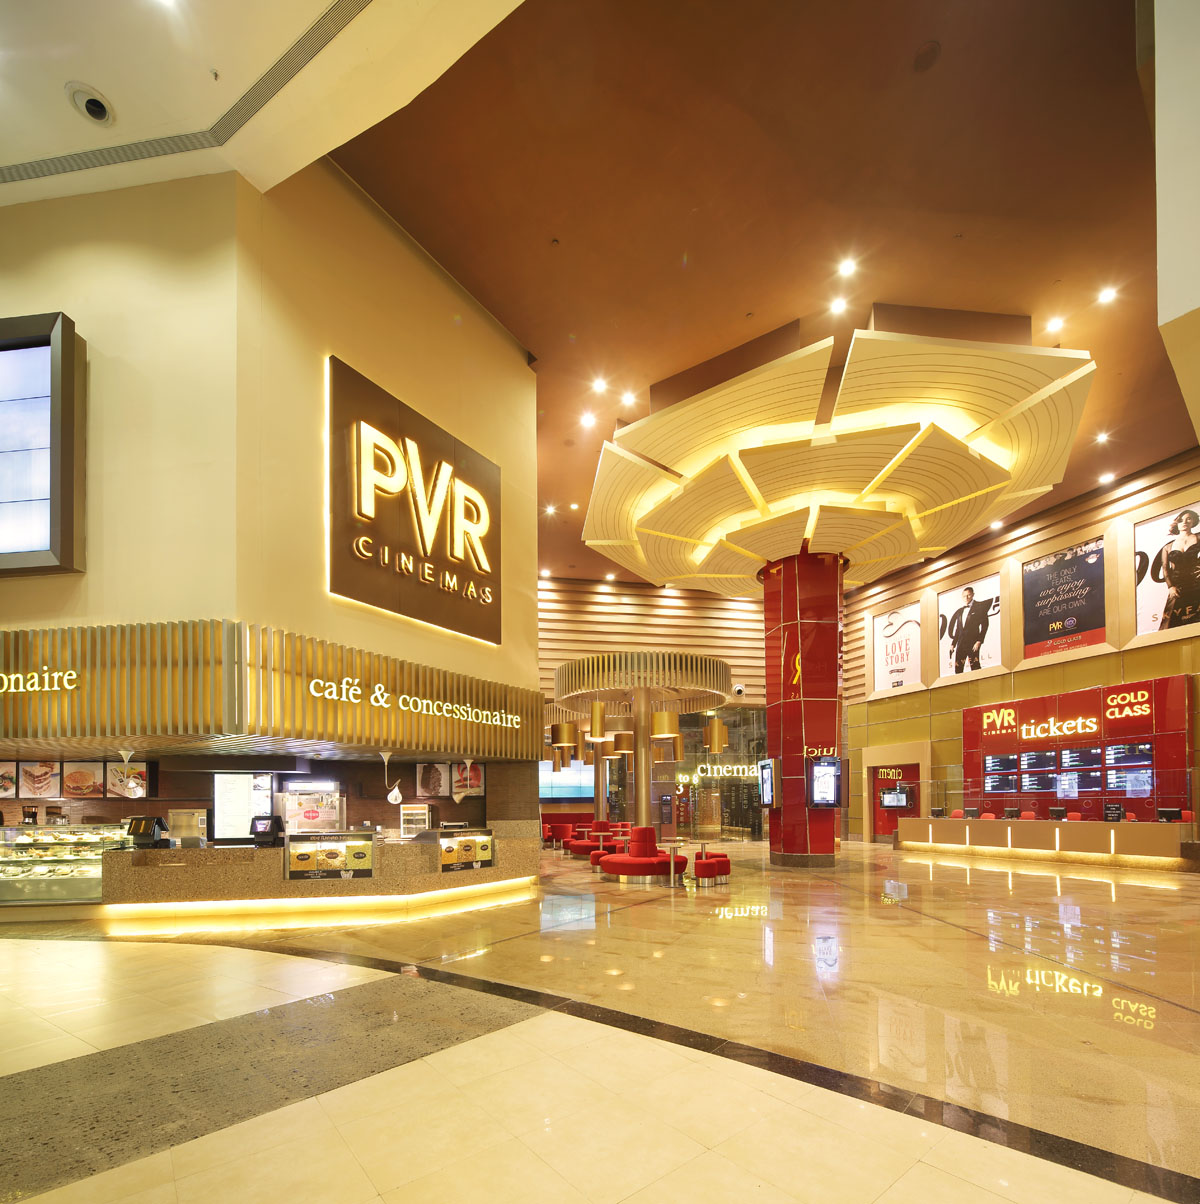 PVR Cinema, Multiplex, Indian real estate news, India property market, Track2media Research, Track2Realty, Akshaya Homes, South Indian property market